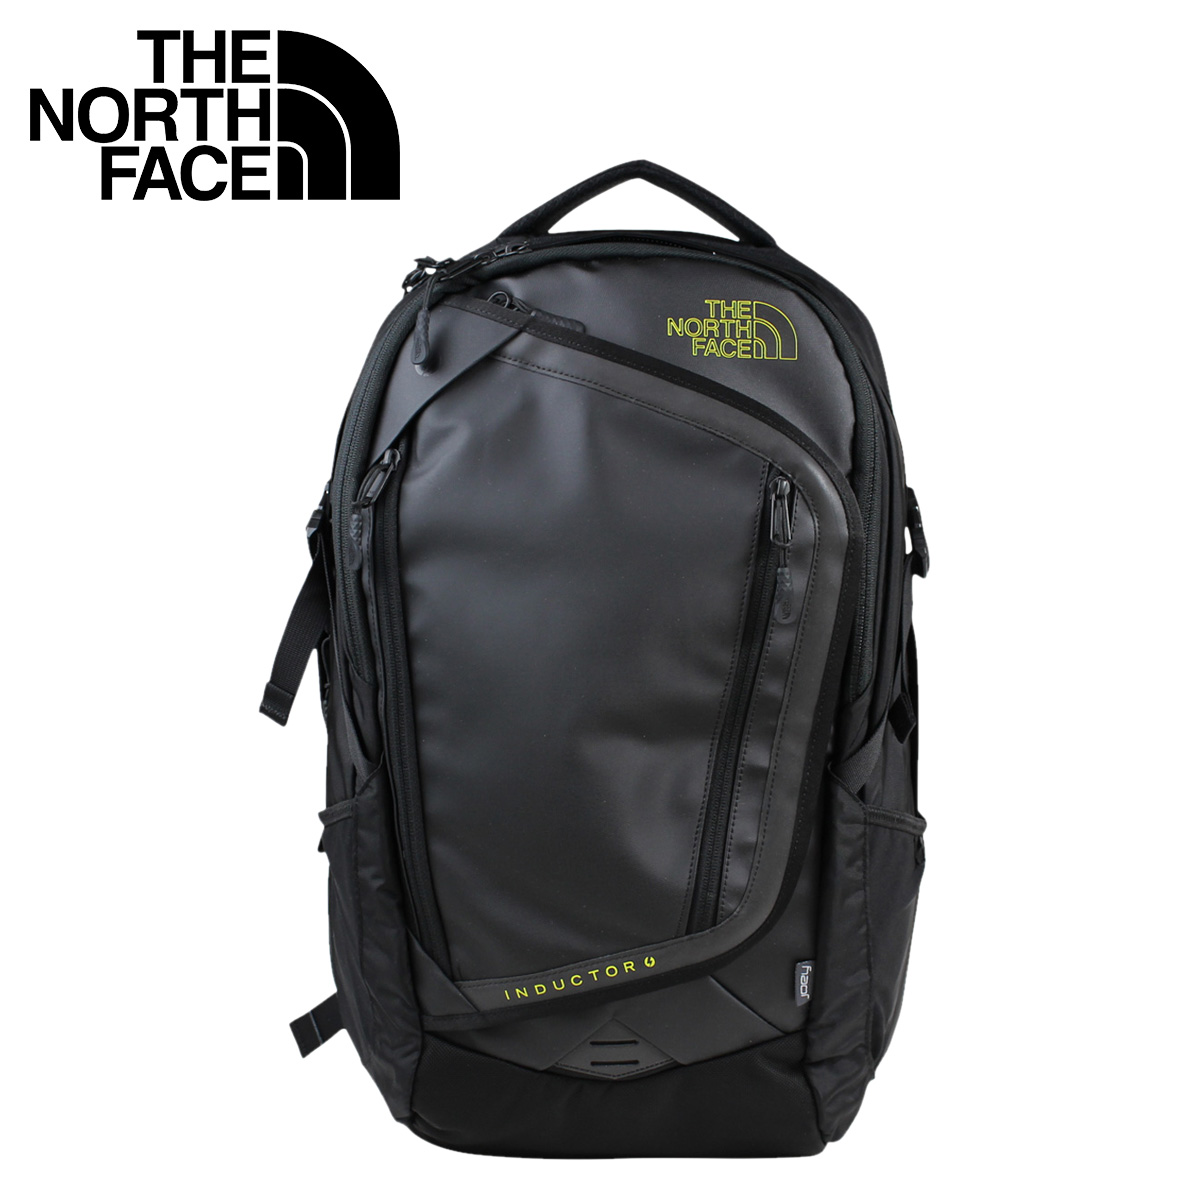 95299d4f0 [SOLD OUT]THE NORTH FACE North Face rucksack backpack INDUCTOR CHARGED CTK6  men gap Dis